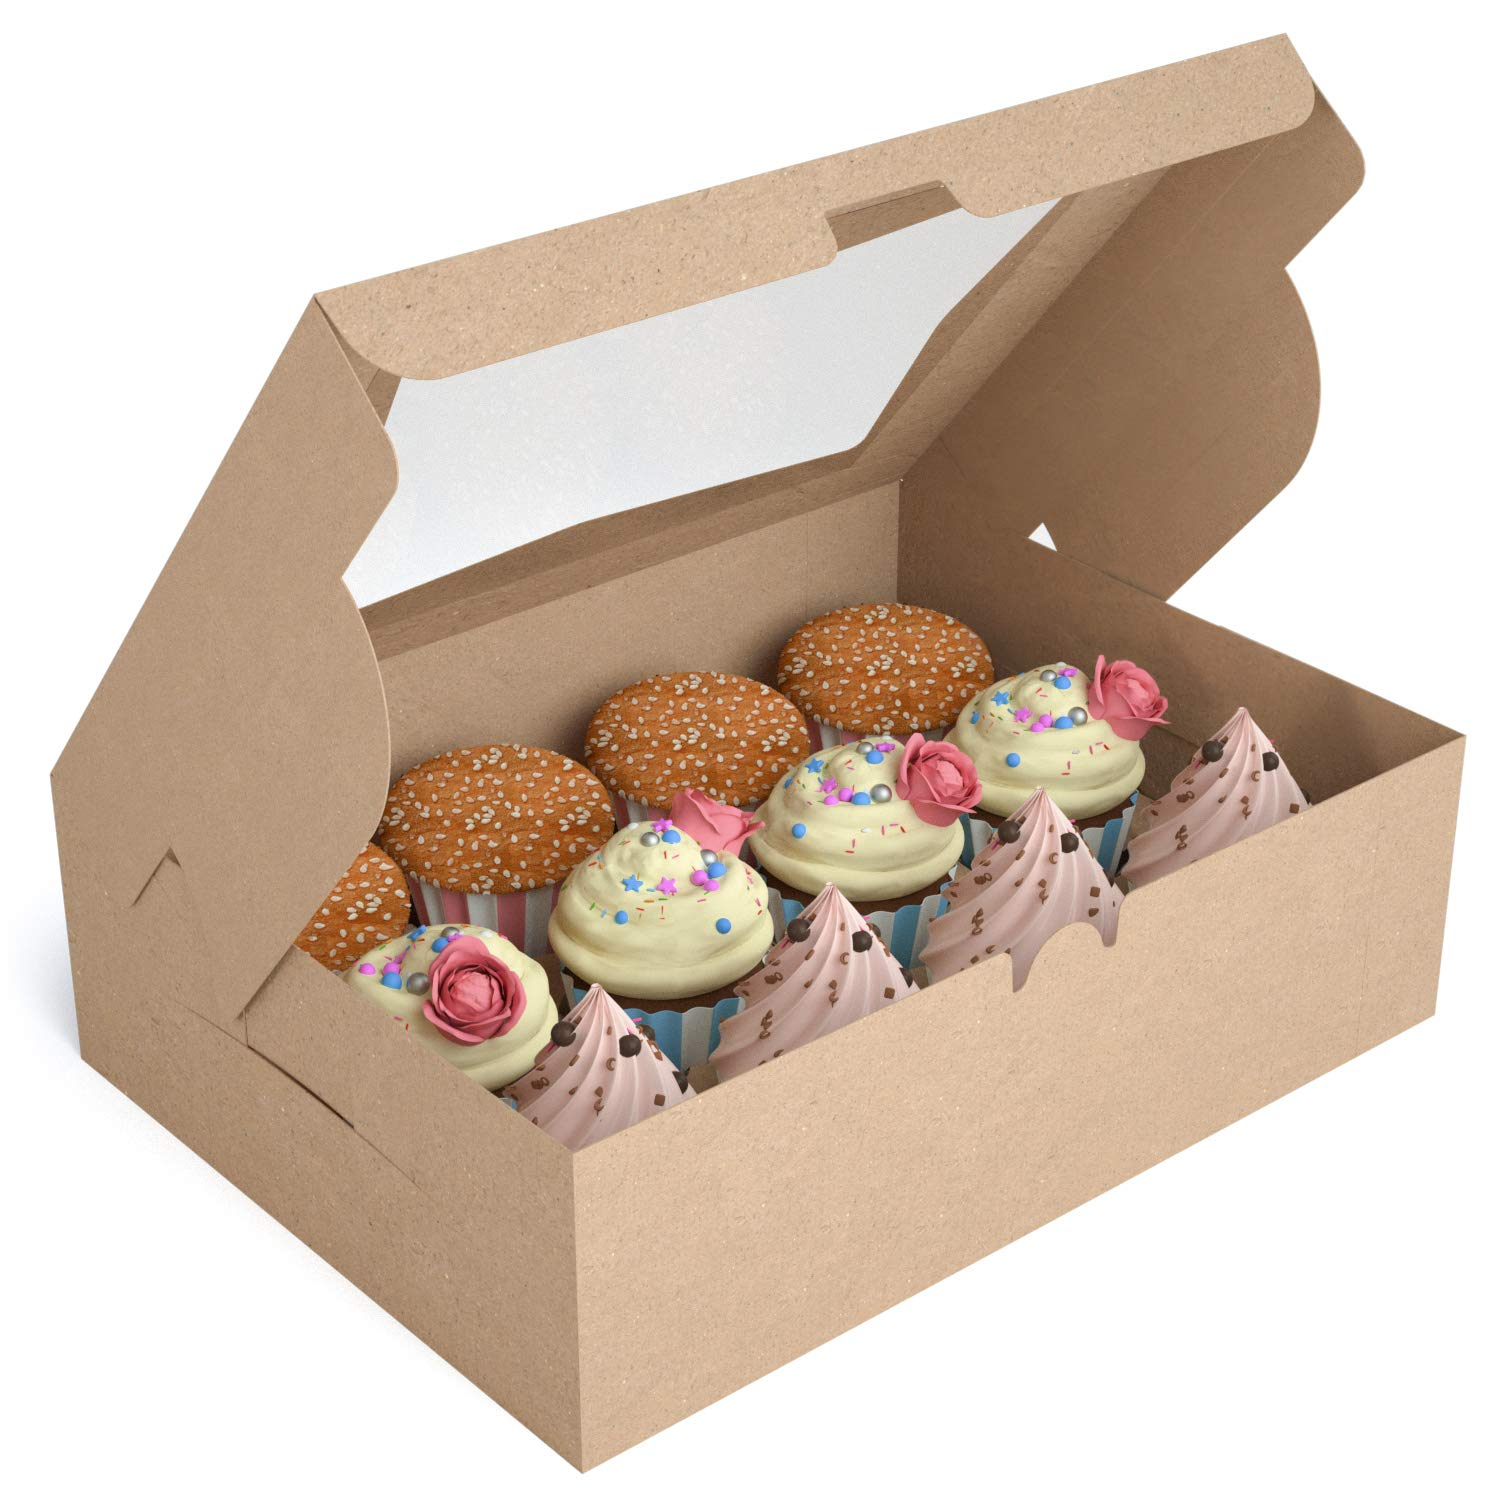 X-Chef Cupcake Boxes, Food Grade Kraft Cupcake Carrier Holder with Inserts and Windows for 12 Cupcakes or Muffins,12 Packs